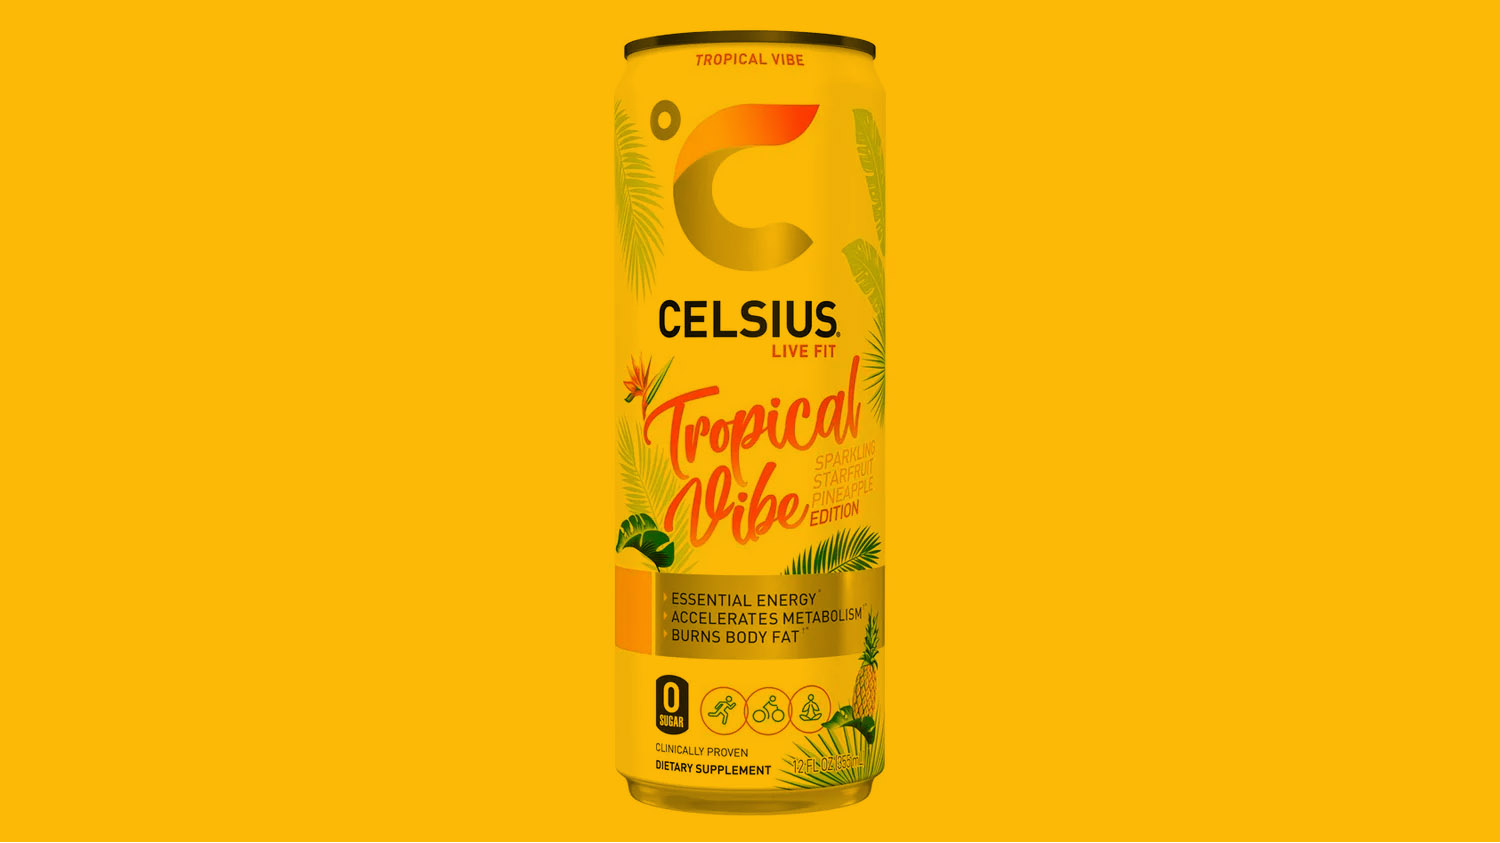 Celsius adds Tropical Vibe flavor to fitness drink lineup | Vending Market Watch